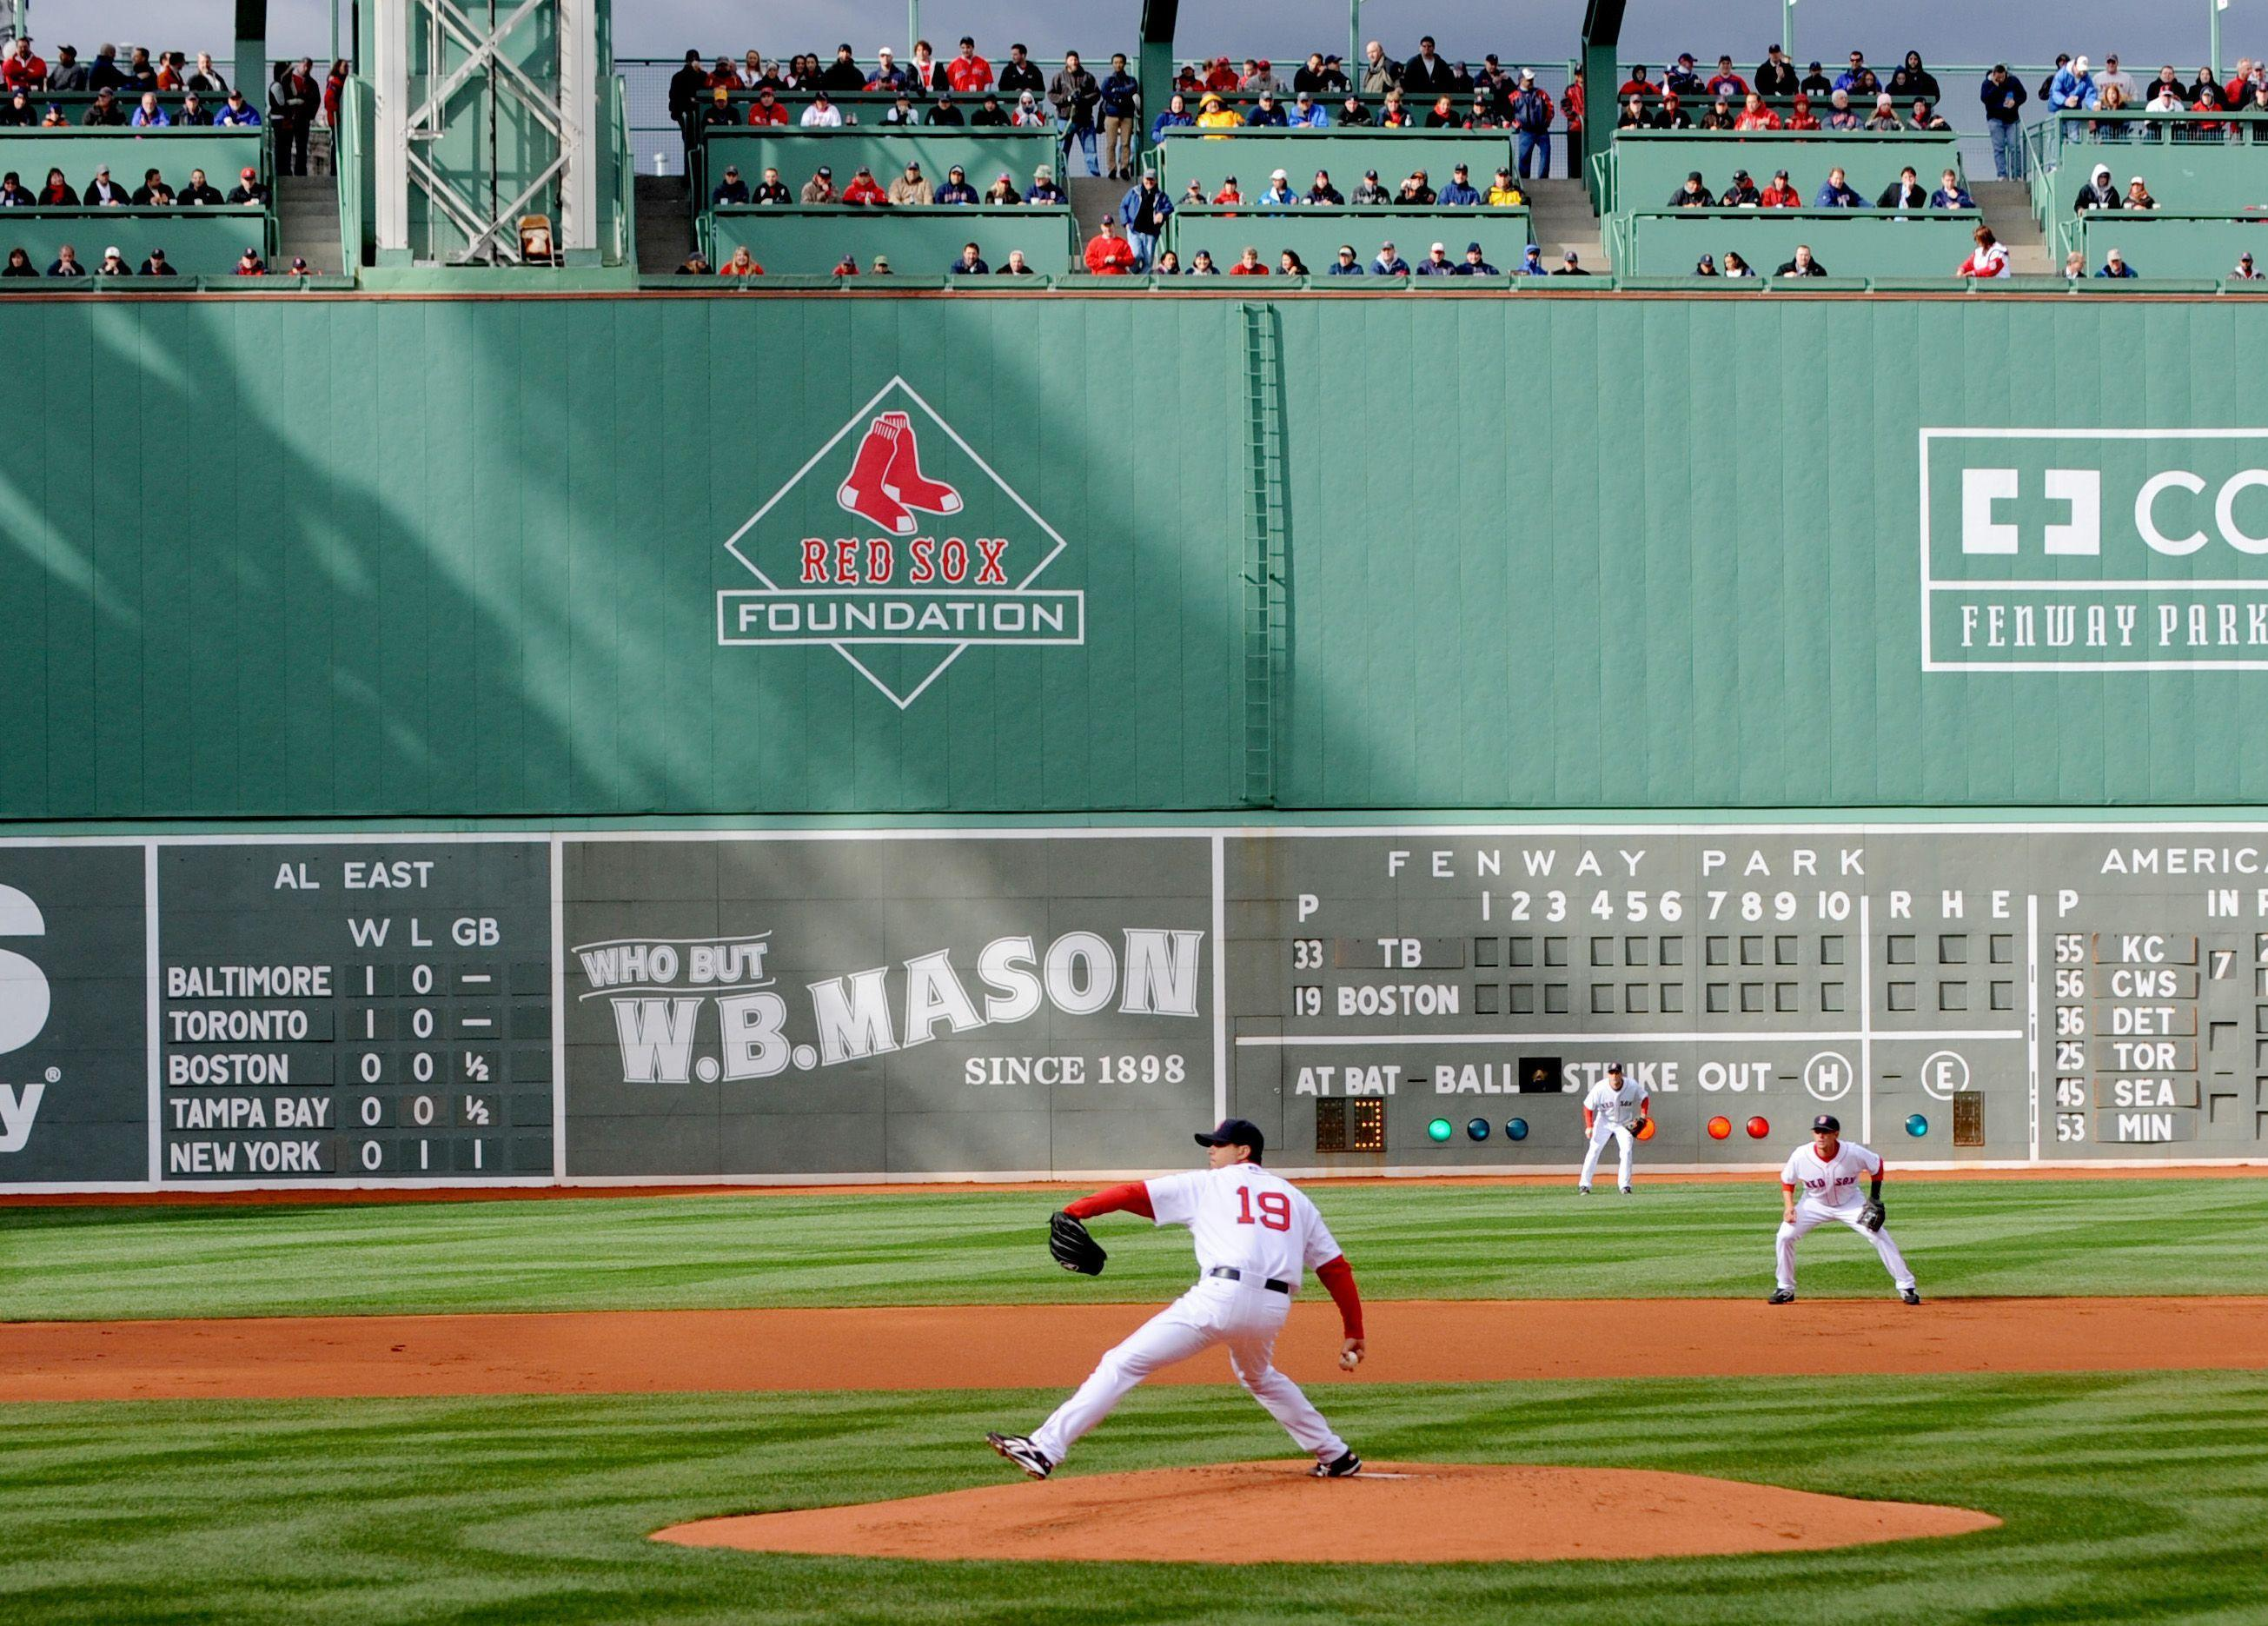 HD Boston Red Sox Backgrounds - wallpaper.wiki